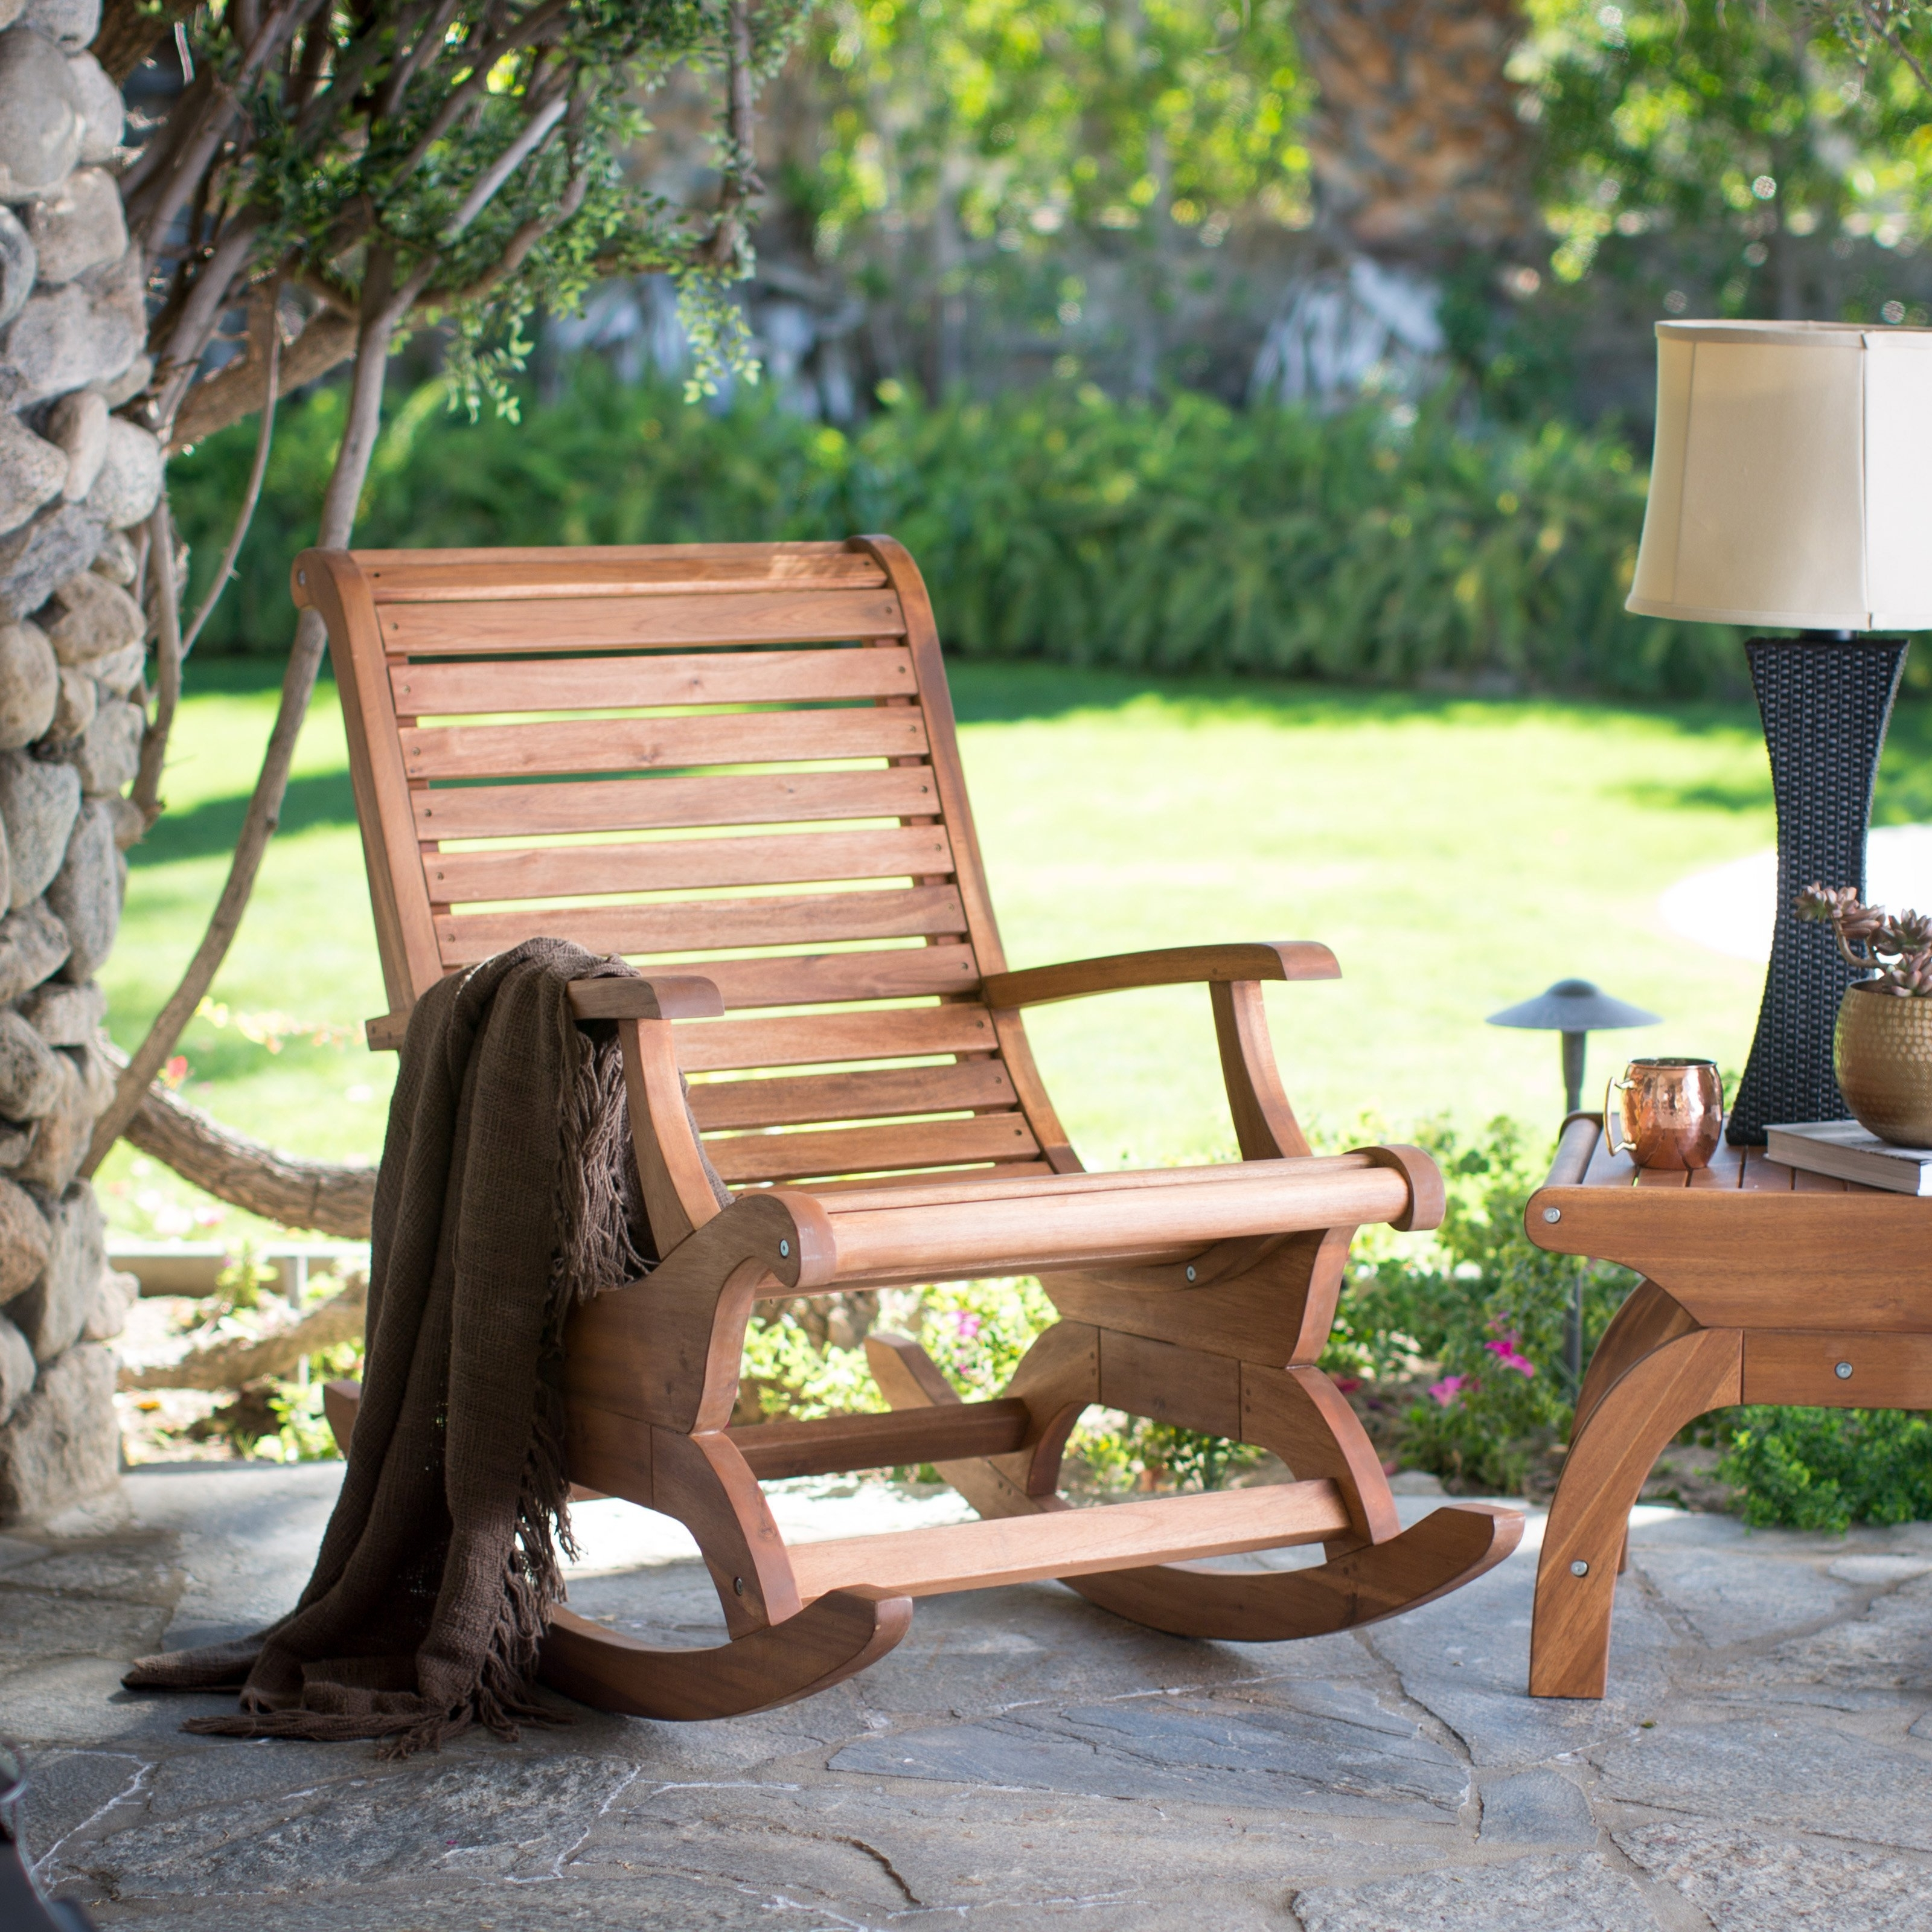 Unique Outdoor Rocking Chairs With Regard To Favorite Outdoor Rocking Chair : Time To Relax – Goodworksfurniture (Gallery 1 of 20)